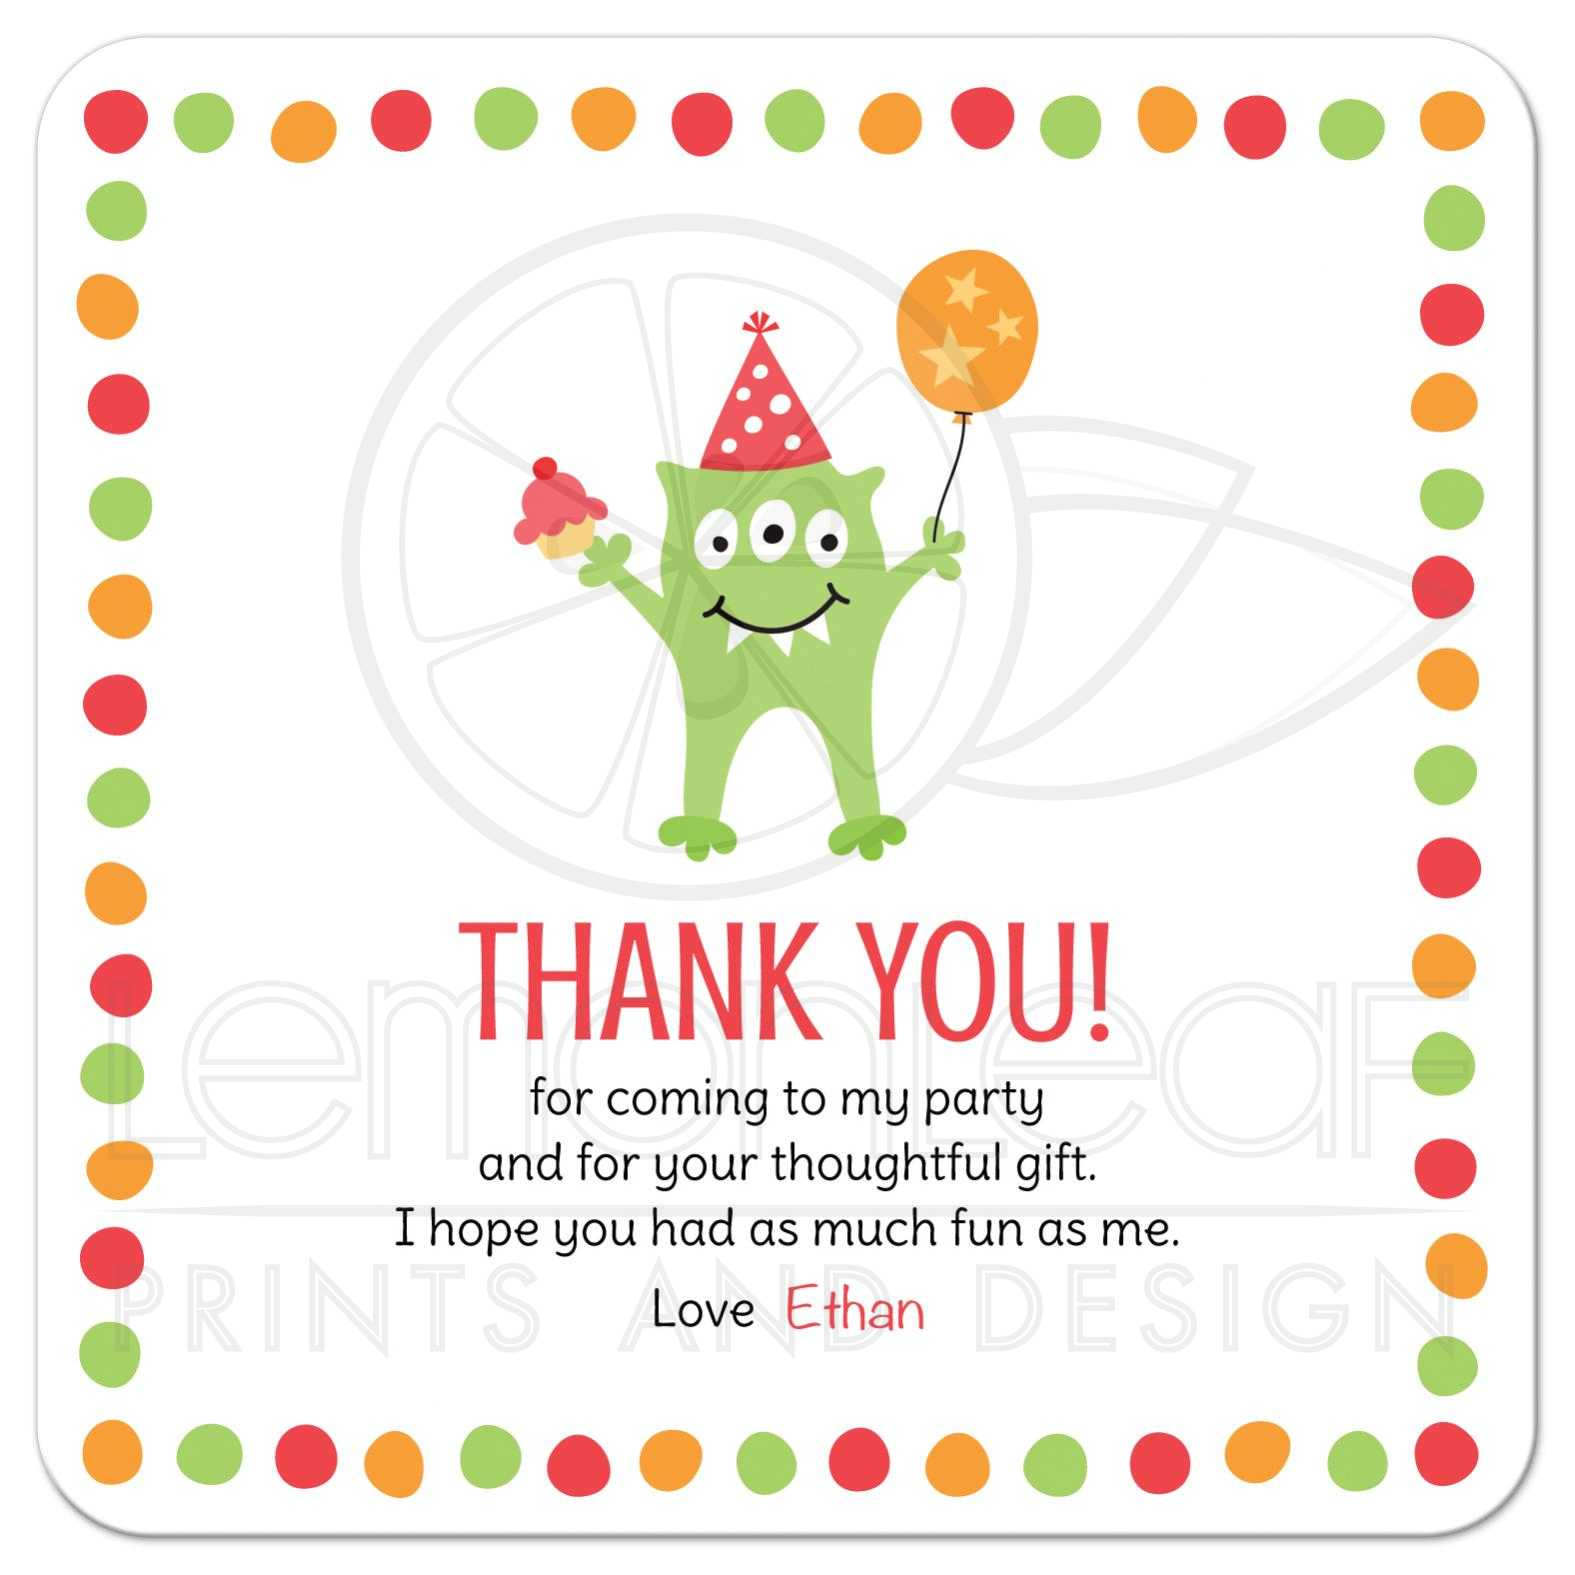 Monster With Three Eyes, Balloon And Party Hat Birthday Party Thank You Card With Personalized Text